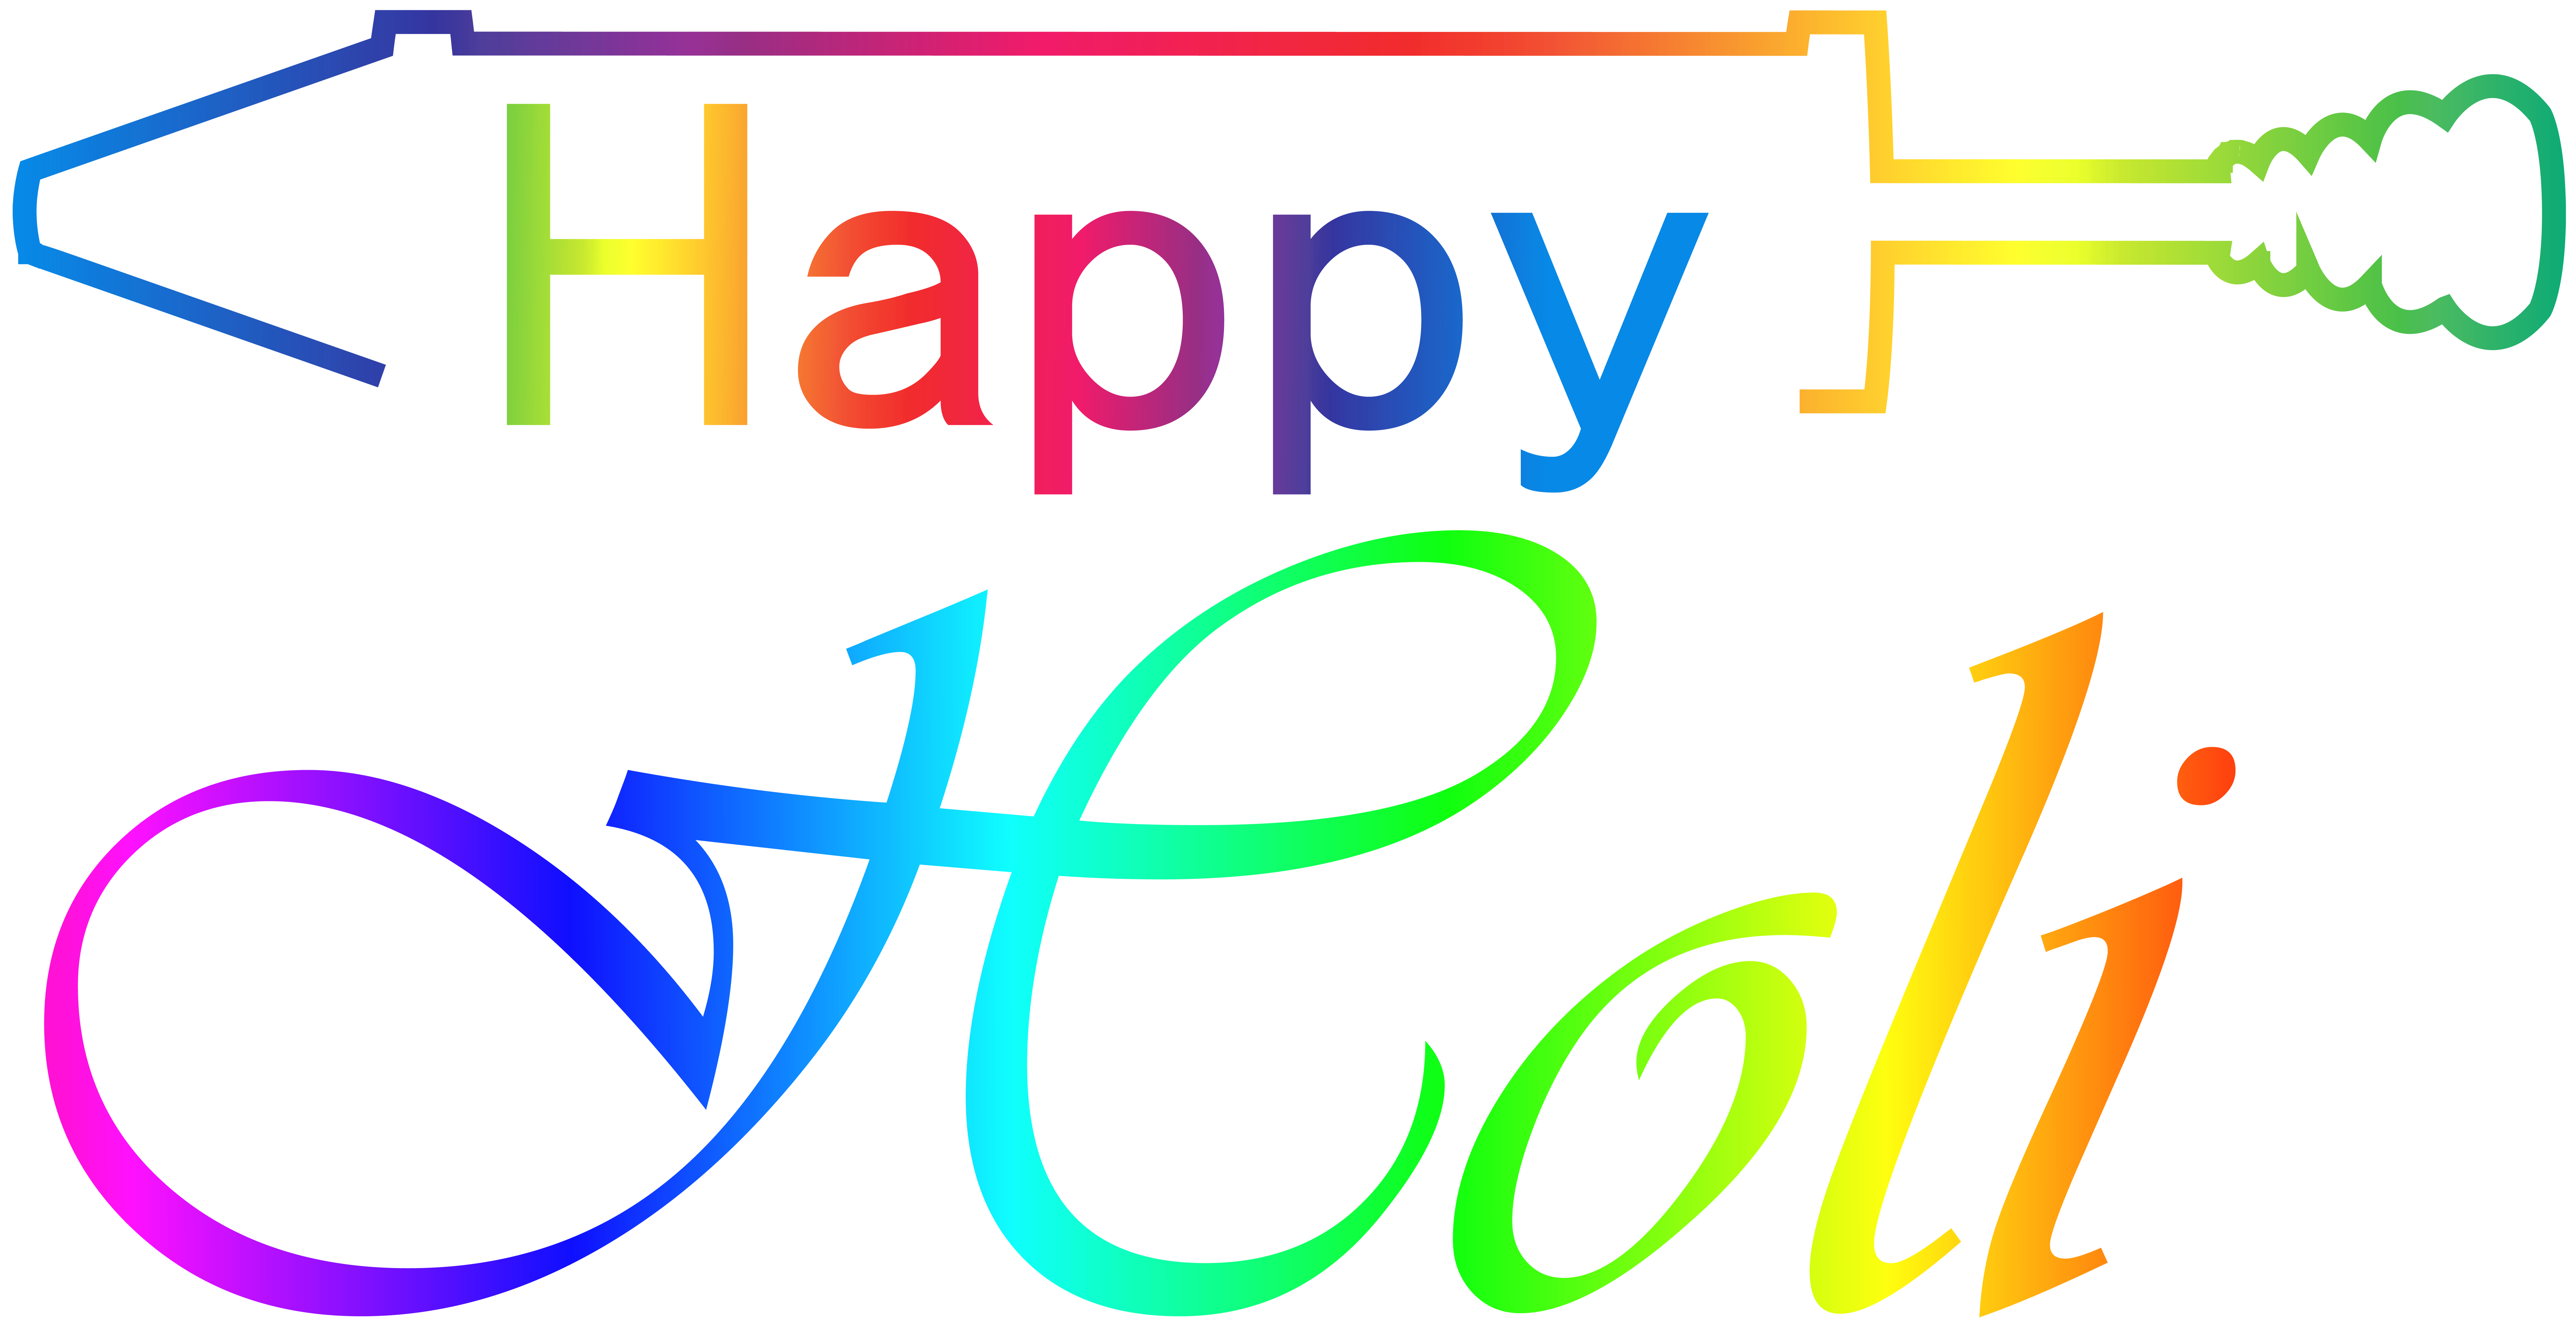 Happy Holi Transparent Clip Art Image.